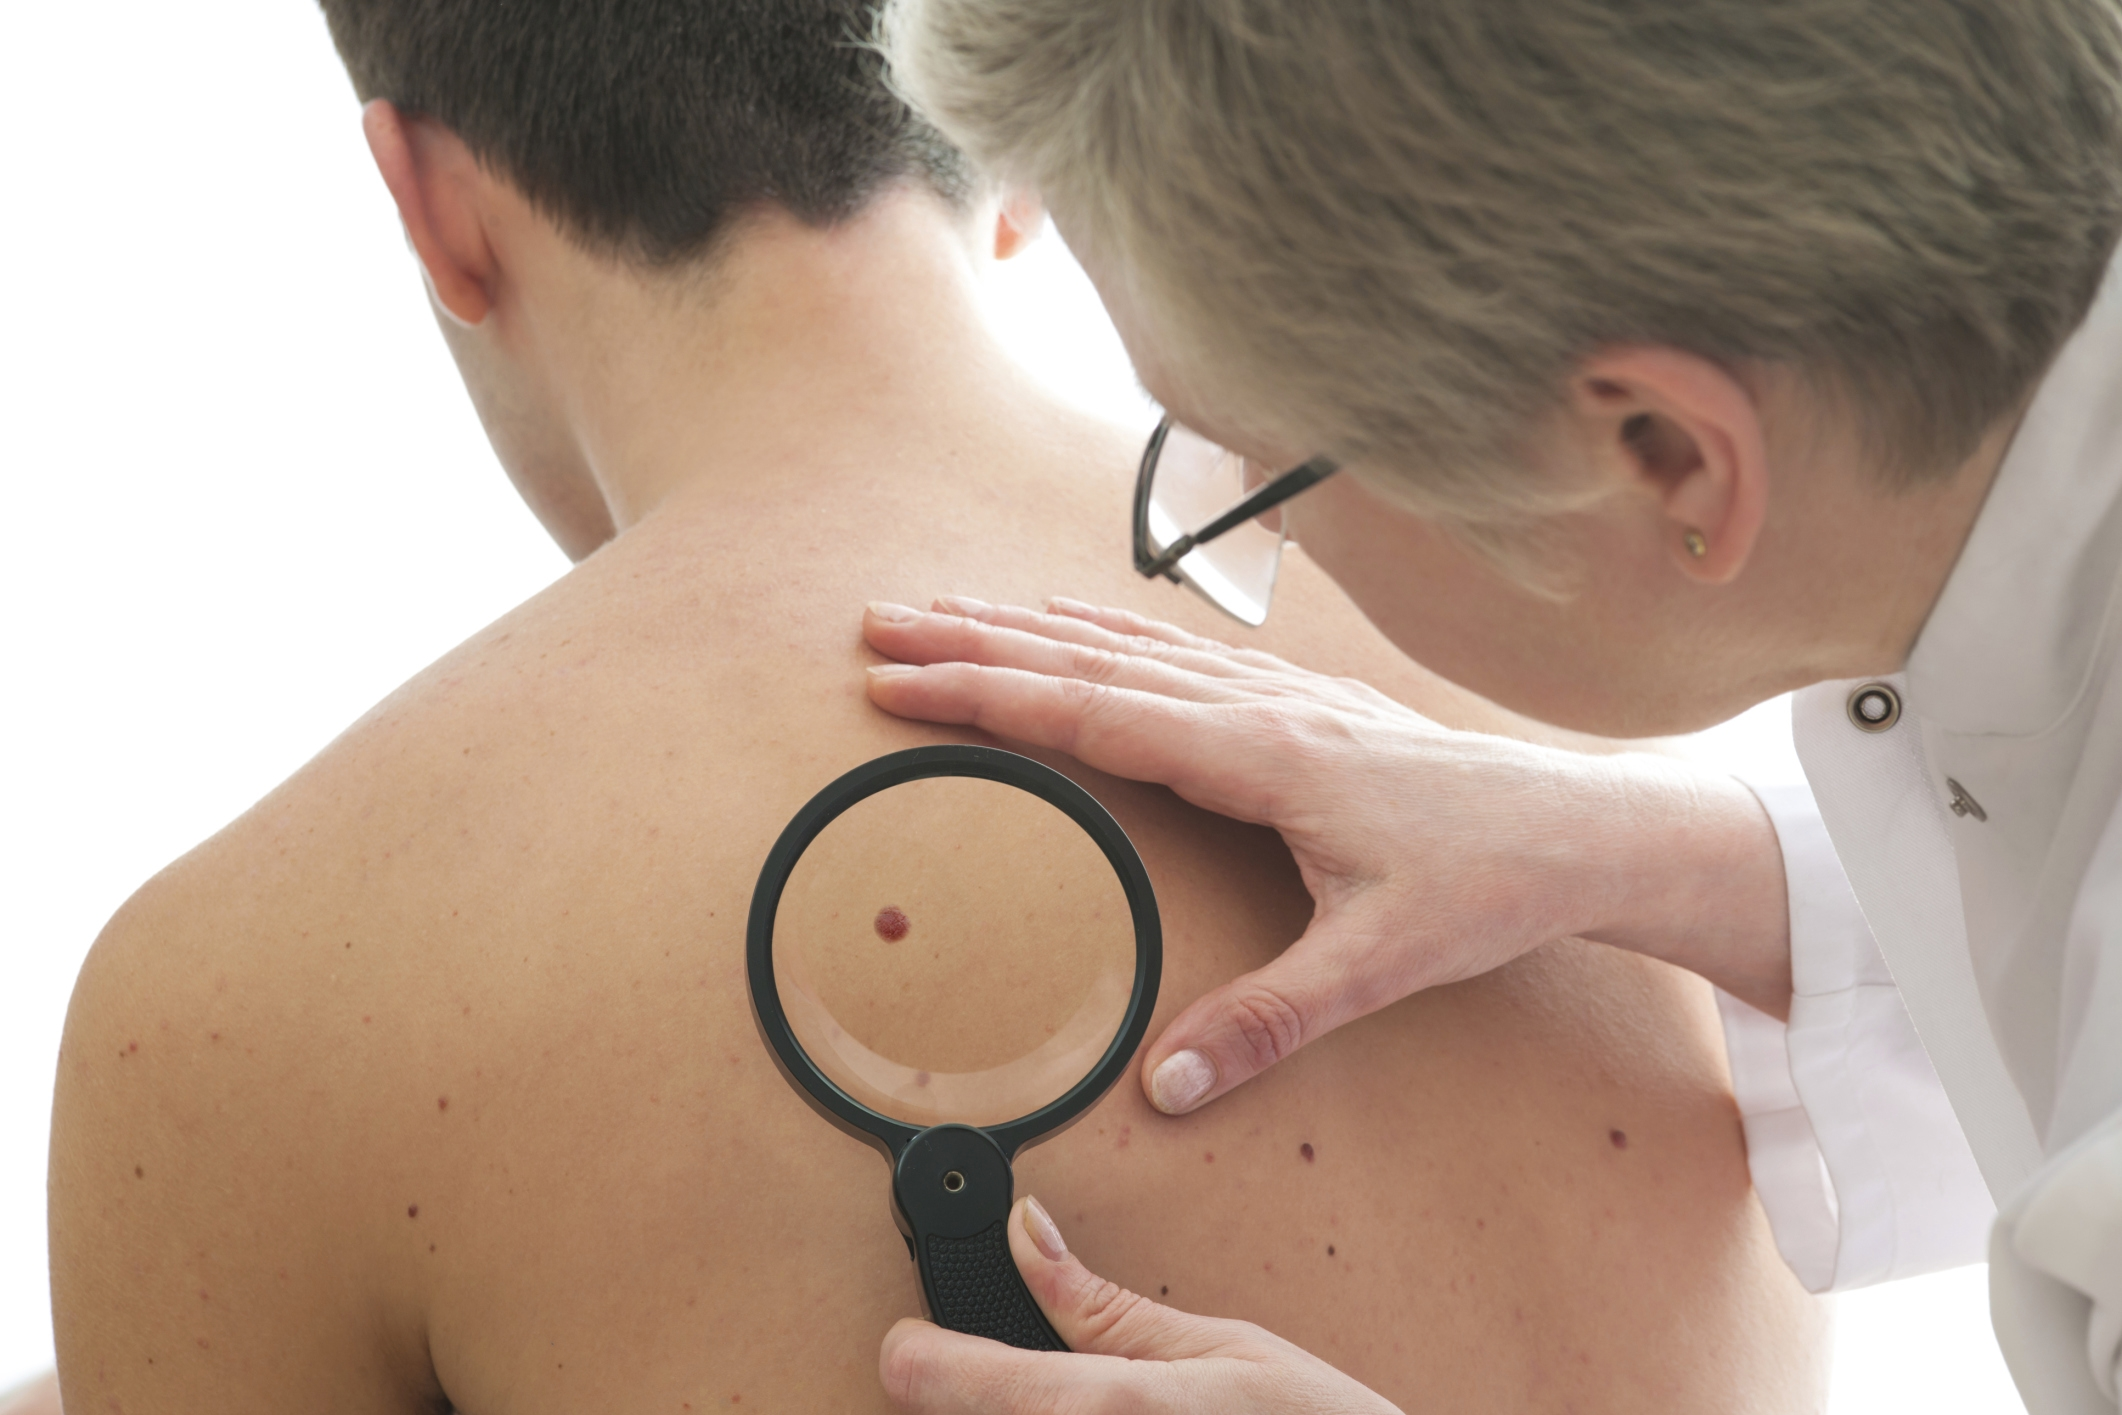 Skin cancer cases in Hampshire have doubled